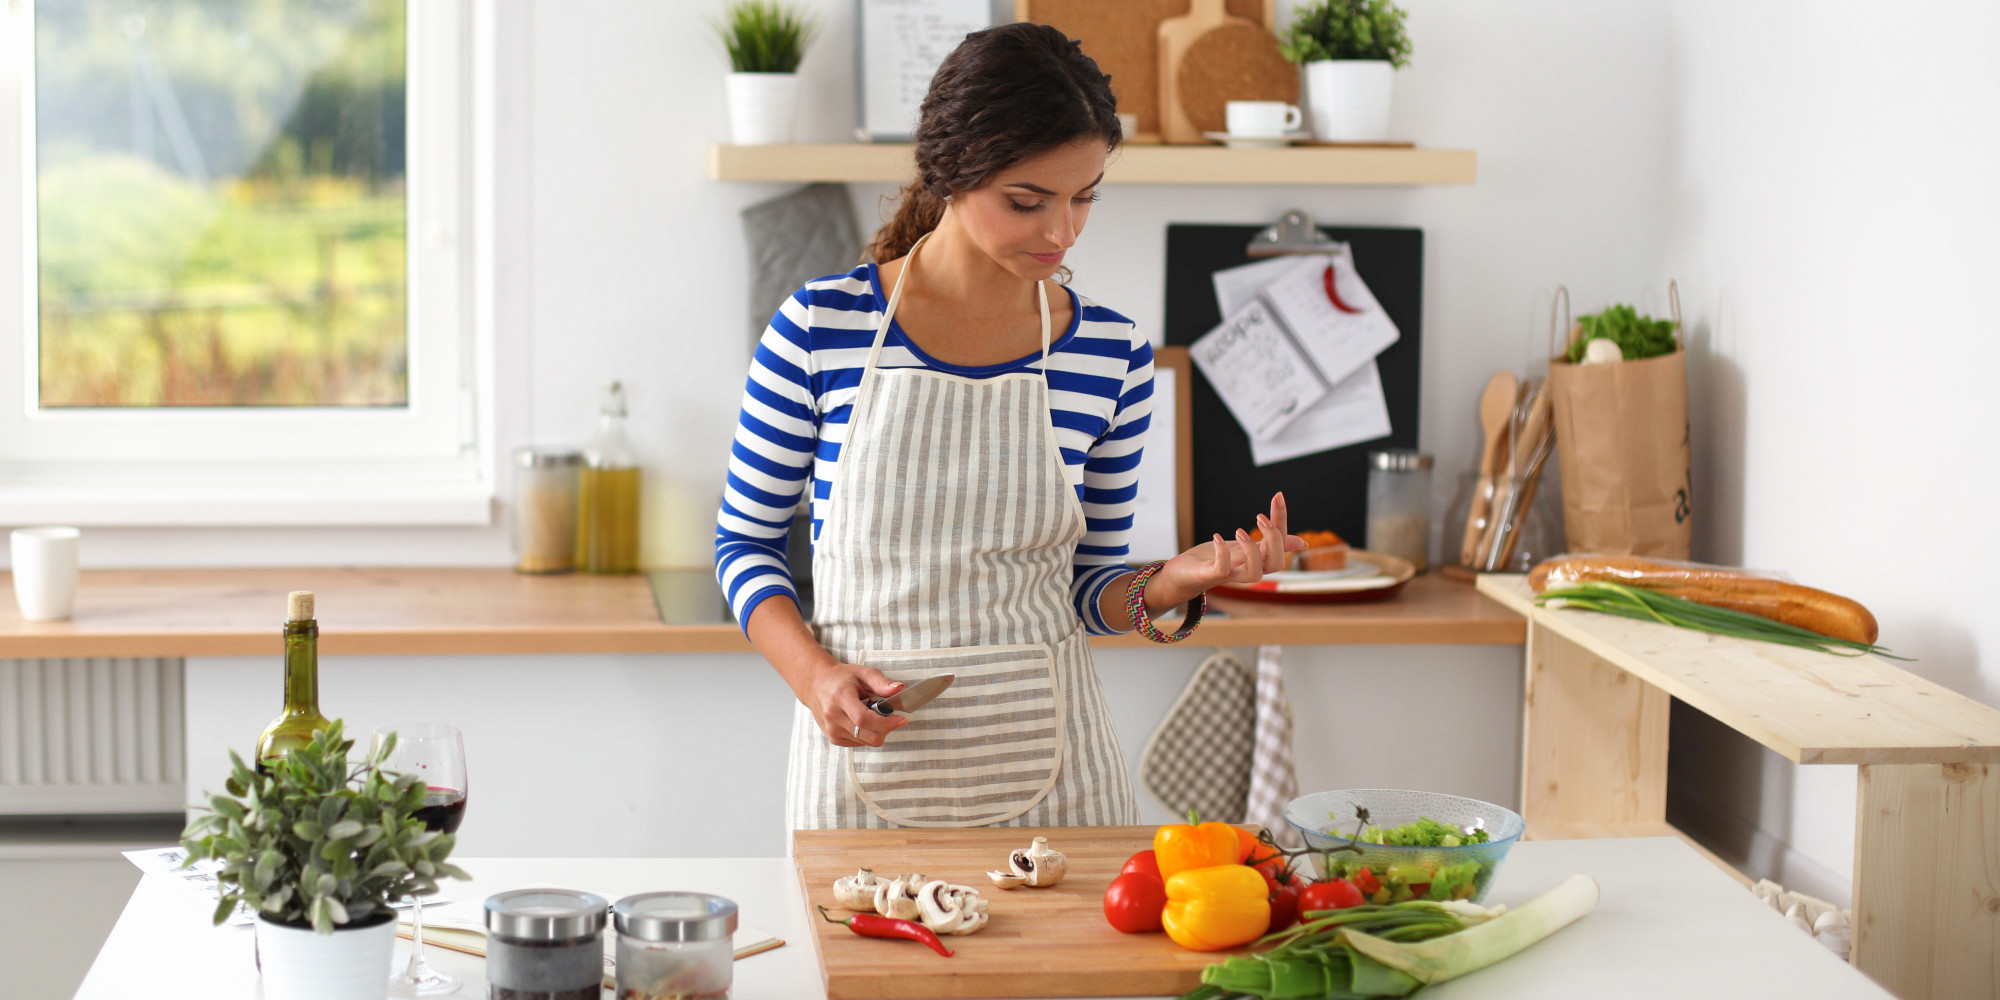 A chef 39 s guide to cooking at home huffpost - Home cooking ...